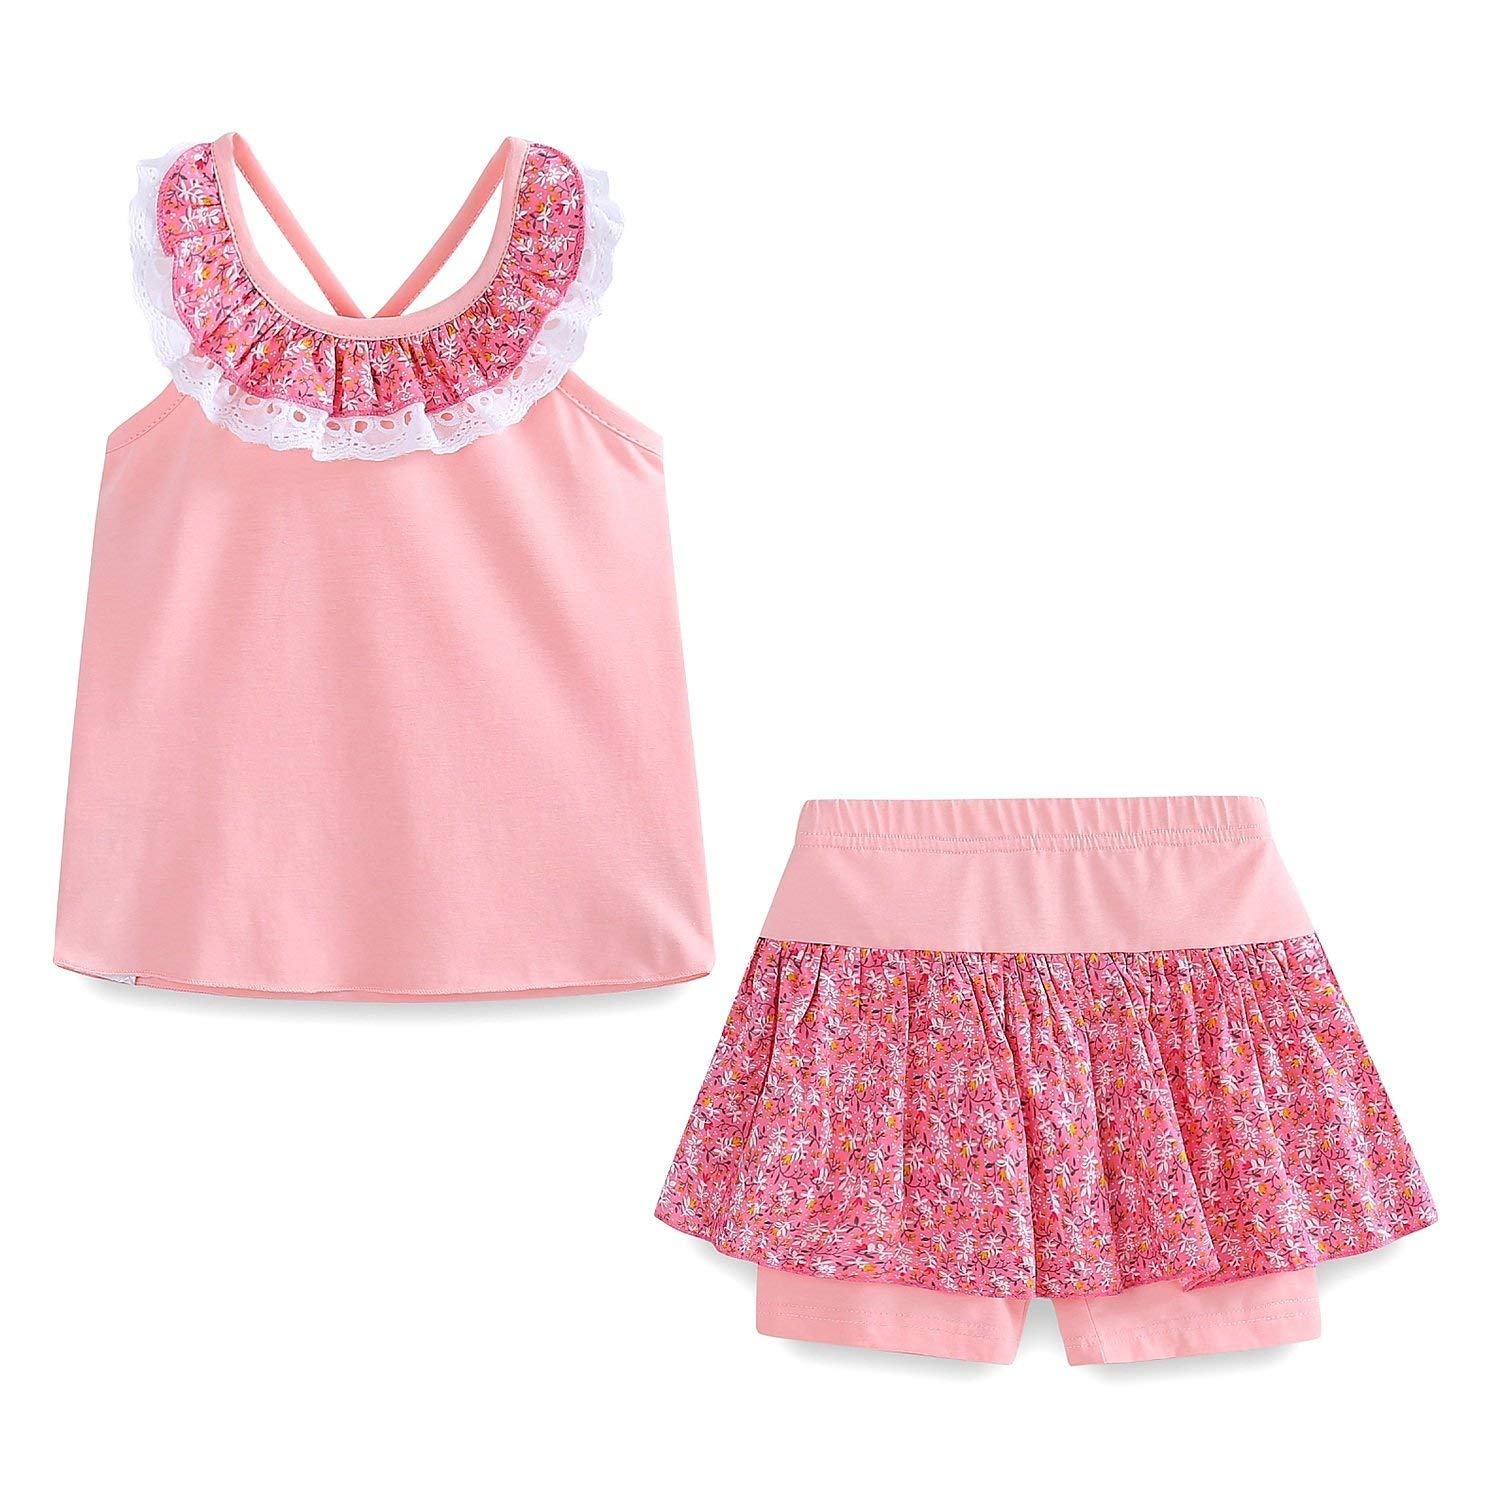 03363236c24 Get Quotations · Mud Kingdom Girls Outfits Holiday Summer Lace Floral  Collar Short Sets